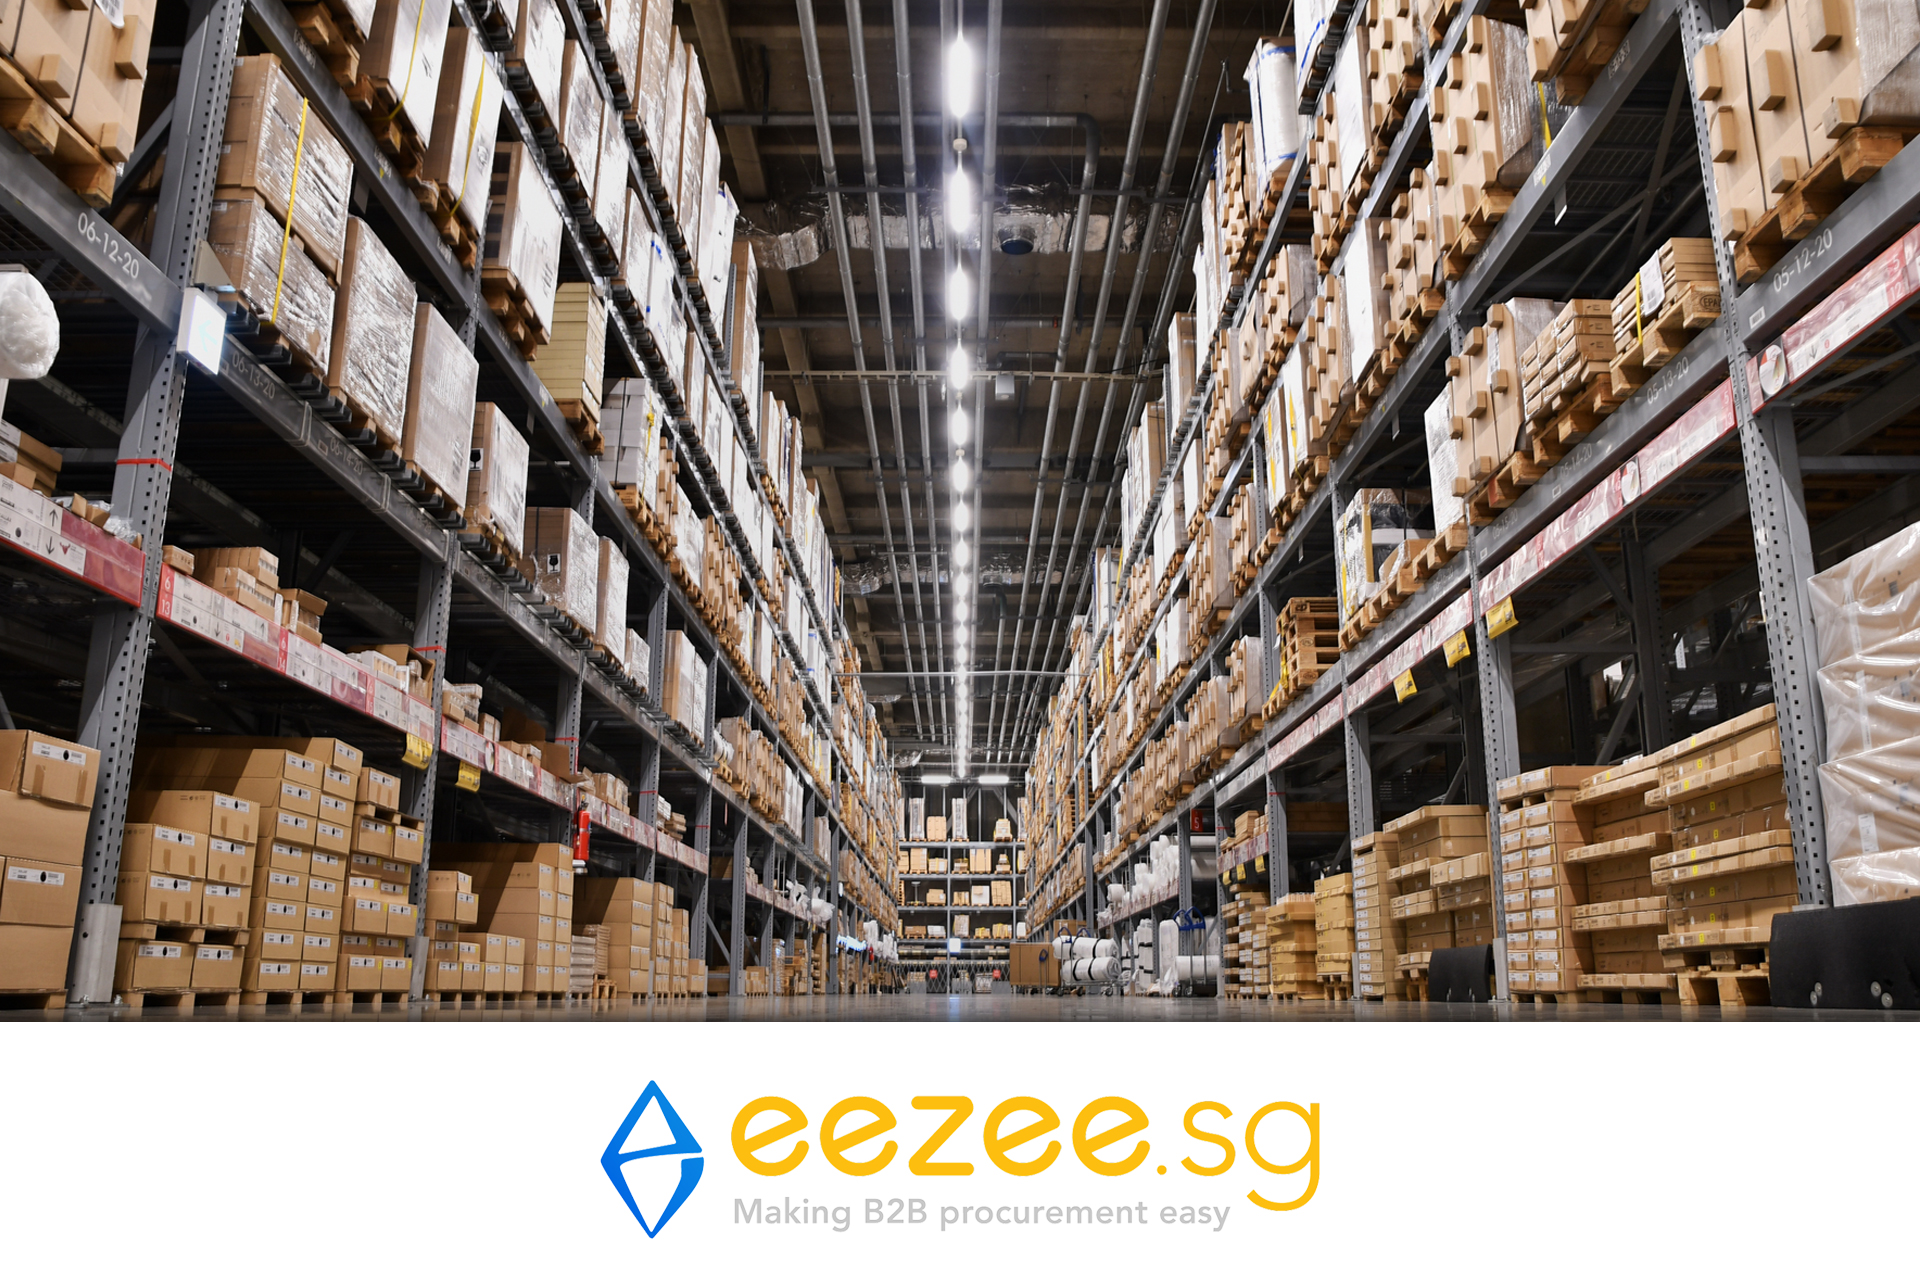 Eezee - On-demand delivery meets B2B ecommerce platform